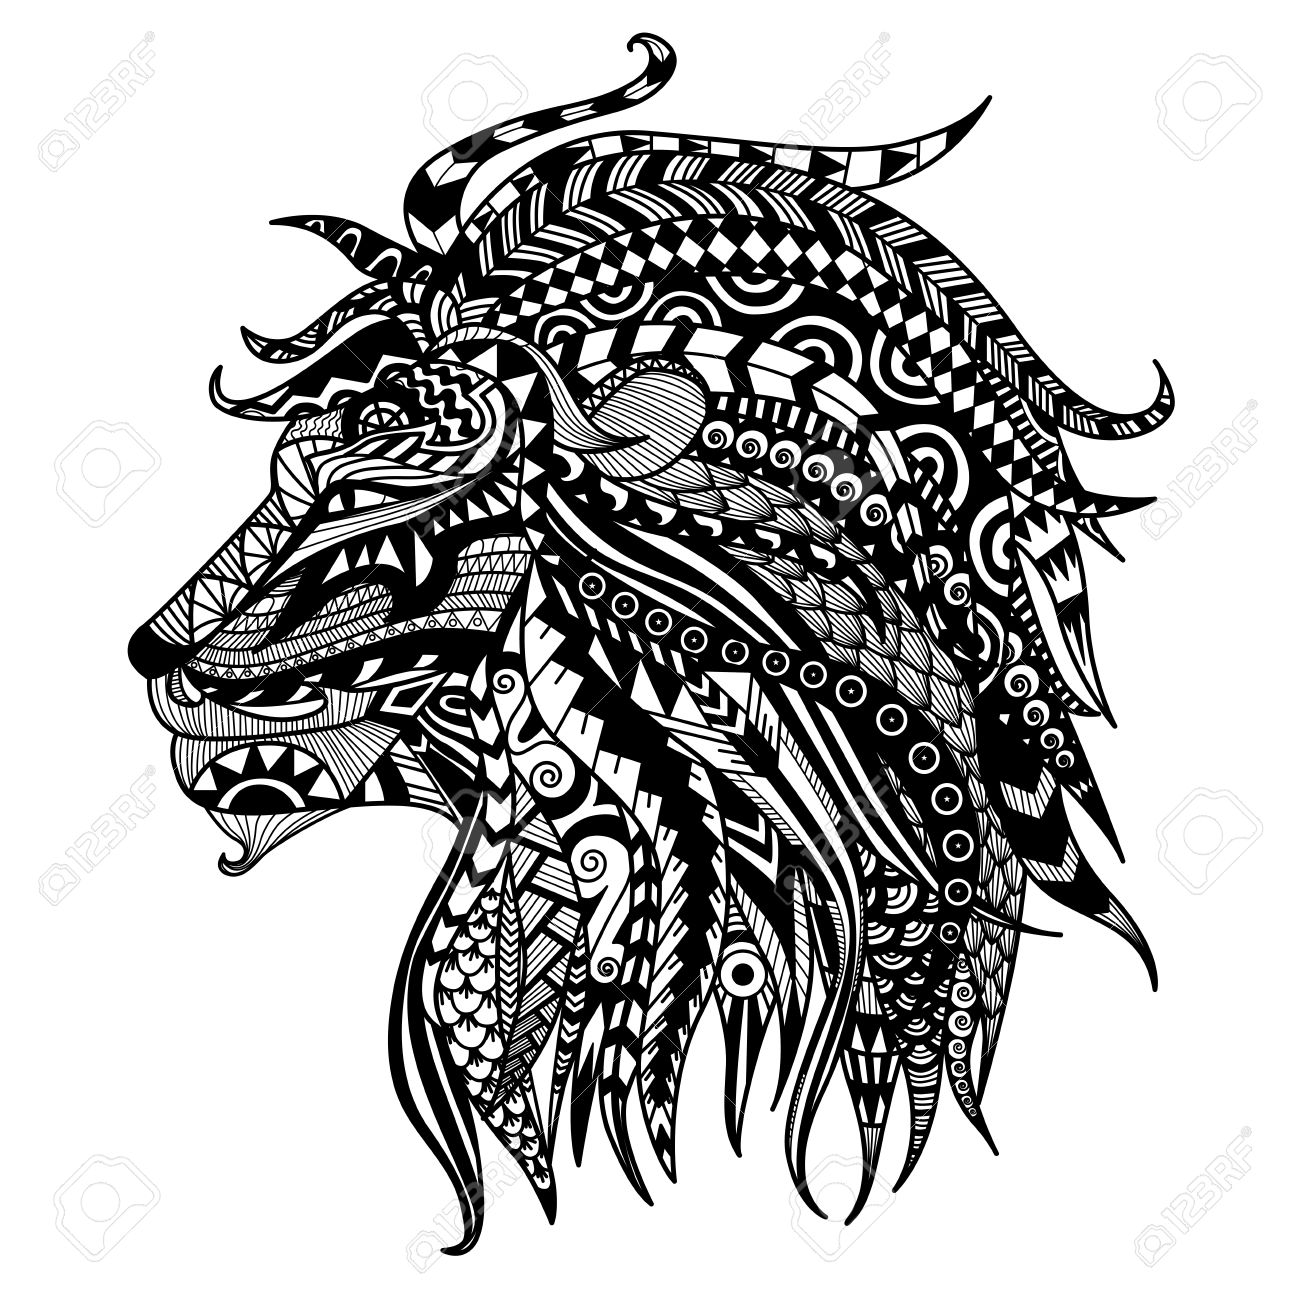 hand drawn lion coloring page stock vector 44239455 - Lion Coloring Page